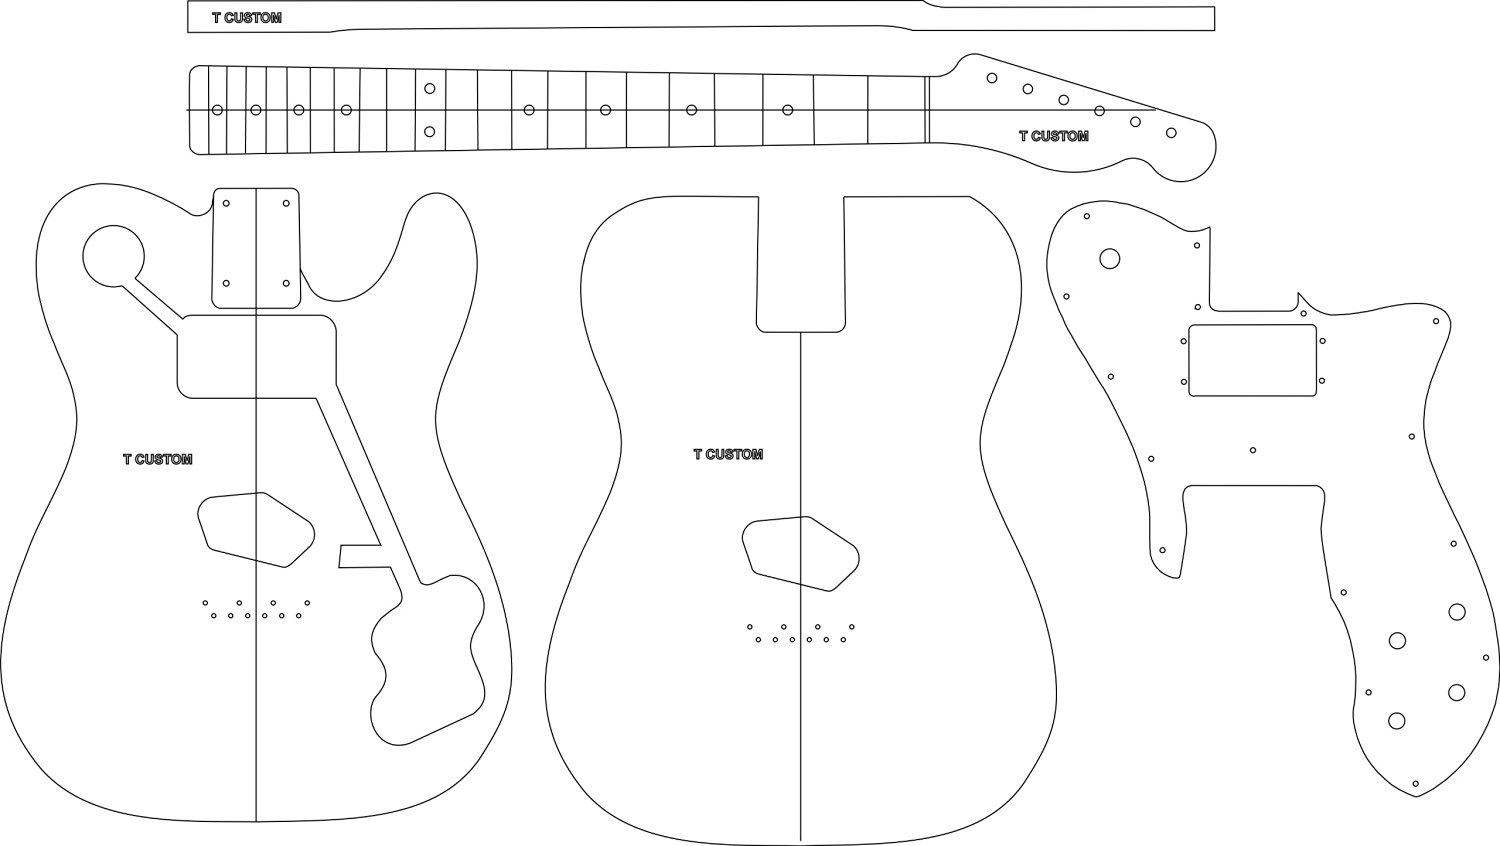 Buy Electric Guitar Routing Template T Custom In Cheap Price On - Guitar routing templates